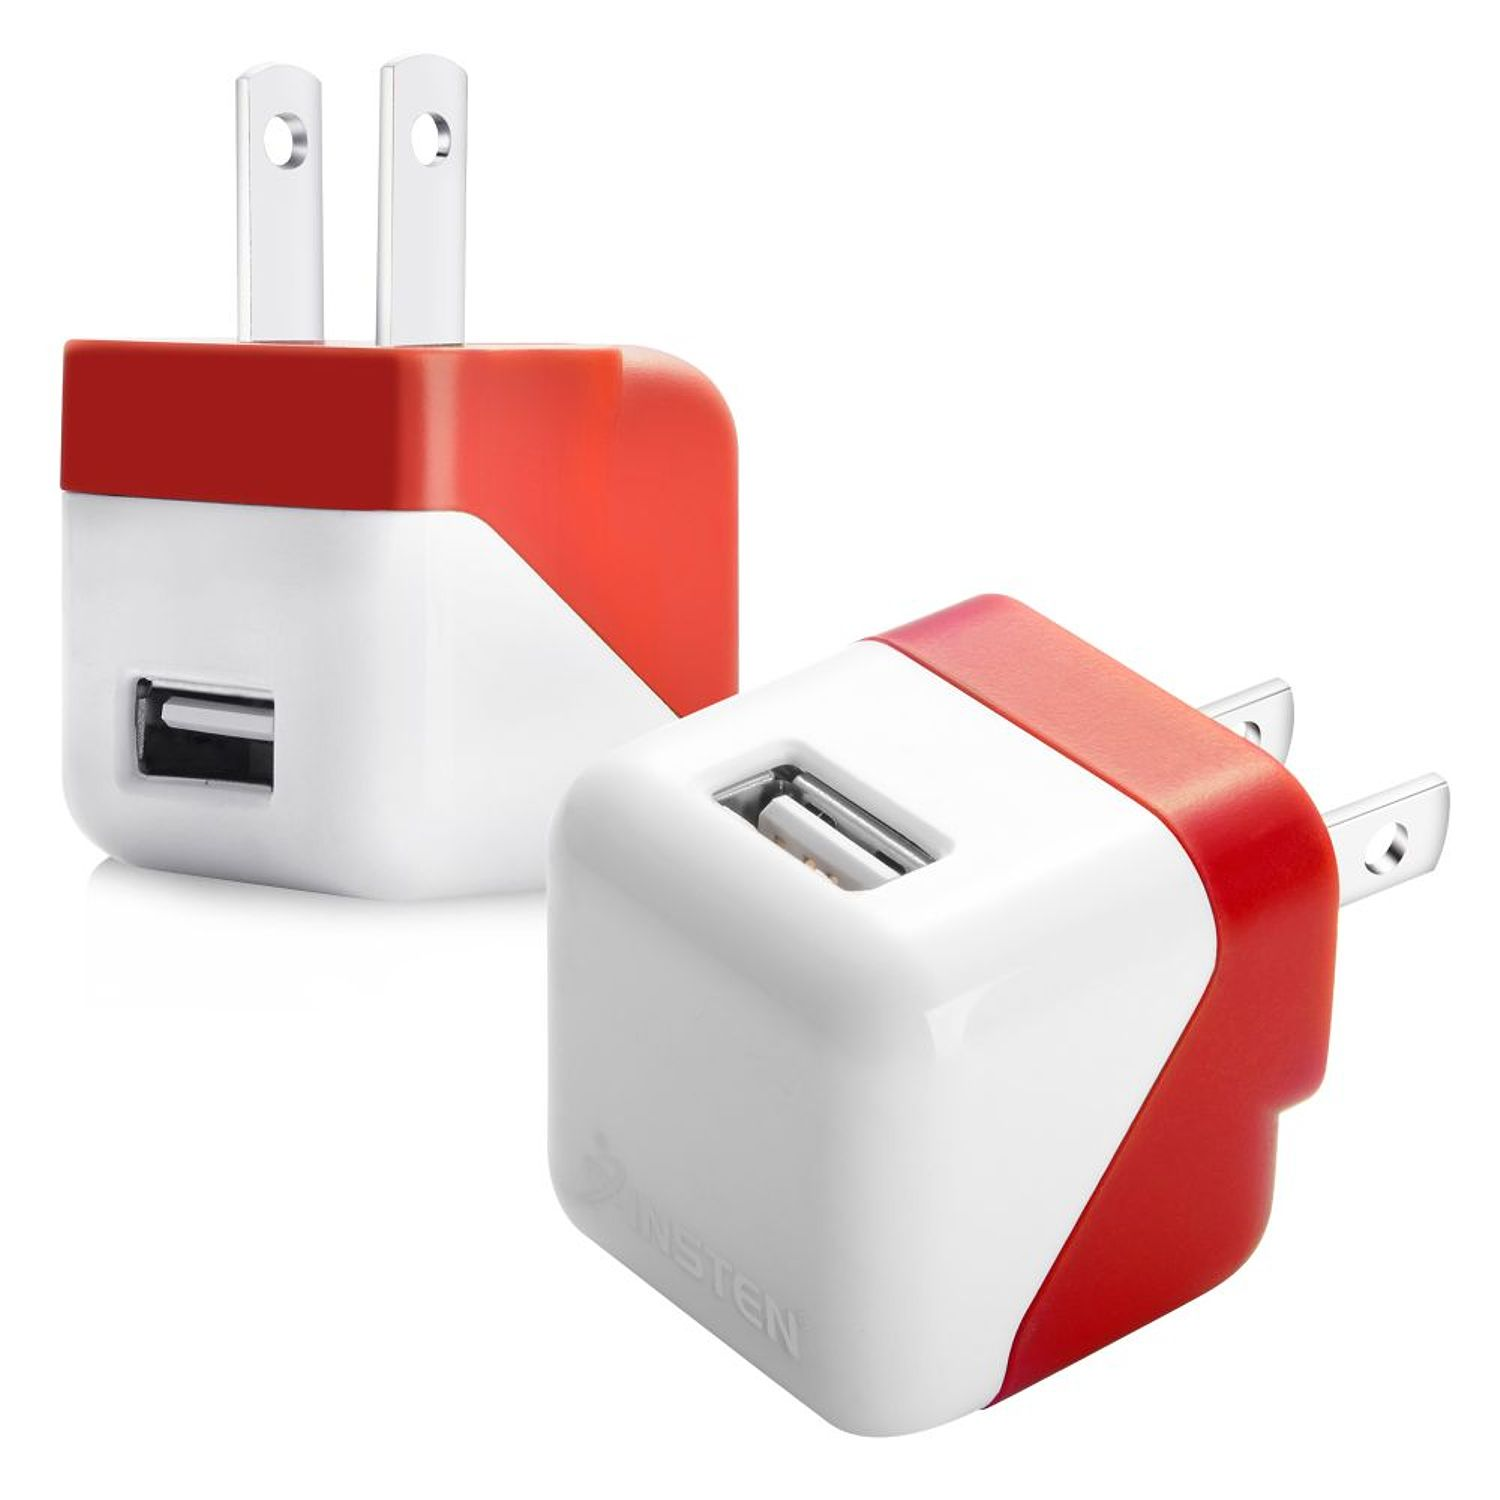 Accesorio Para El Celular USB Charger by Insten Universal USB AC Wall Travel Adapter Charger Red For iPhone X 8 7 6 6s Plus SE 5S 5 Samsung Galaxy S9 S9+ S7 S6 S5 Note 8 5 J7 J3 J1 On5 LG G Stylo 3 2 Stylus K7 G6 G6+ V30 V20 + Insten en VeoyCompro.net